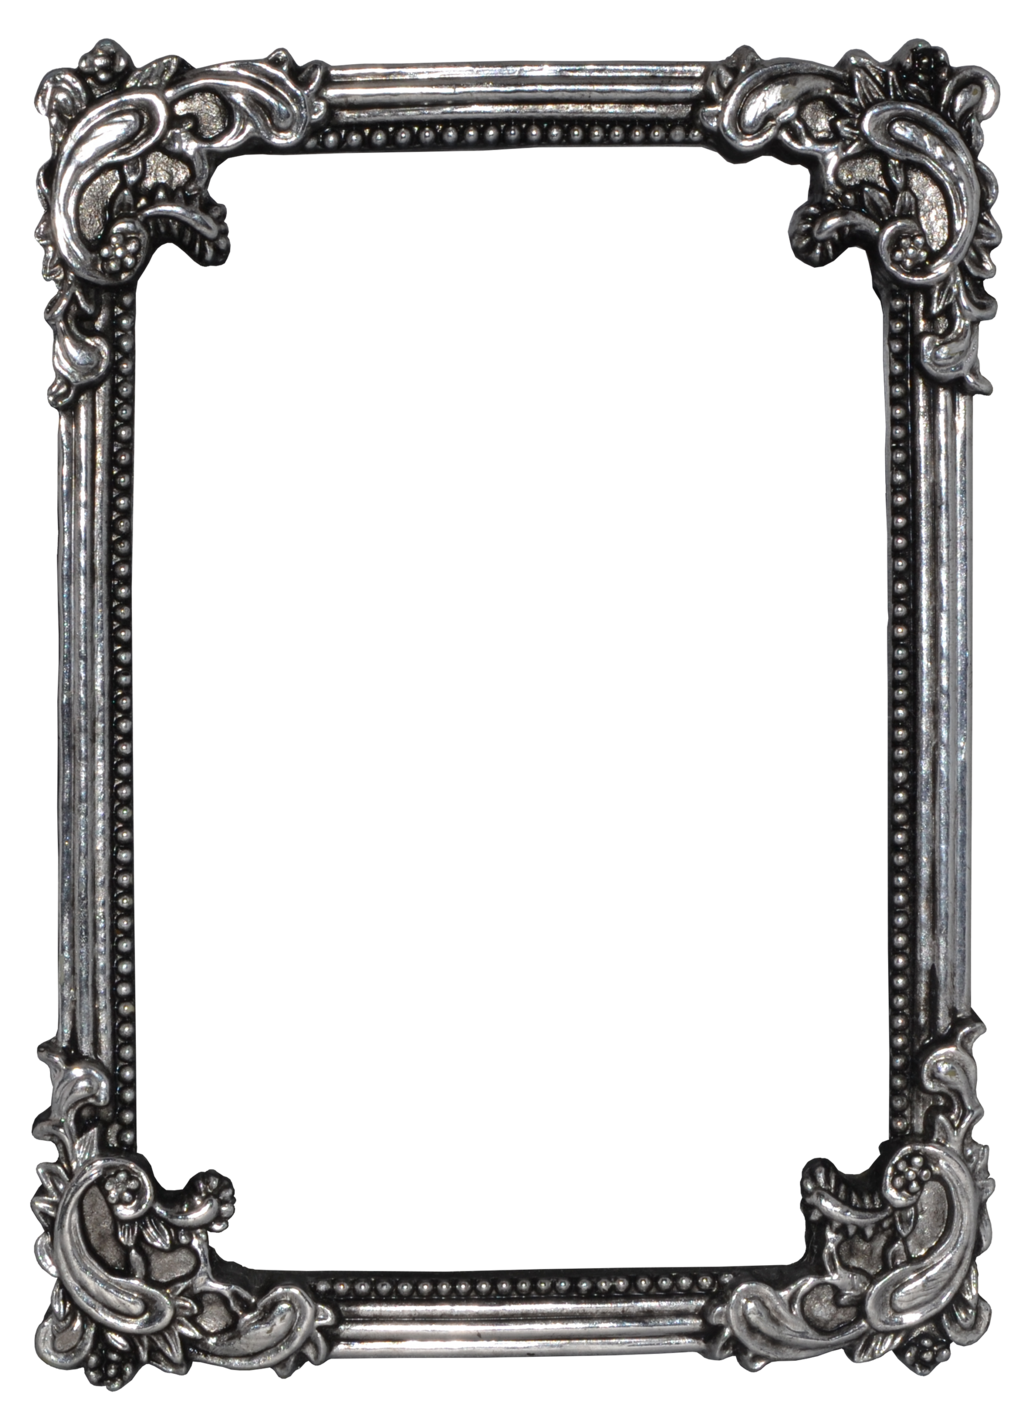 Black frames png. Frame transparent images all